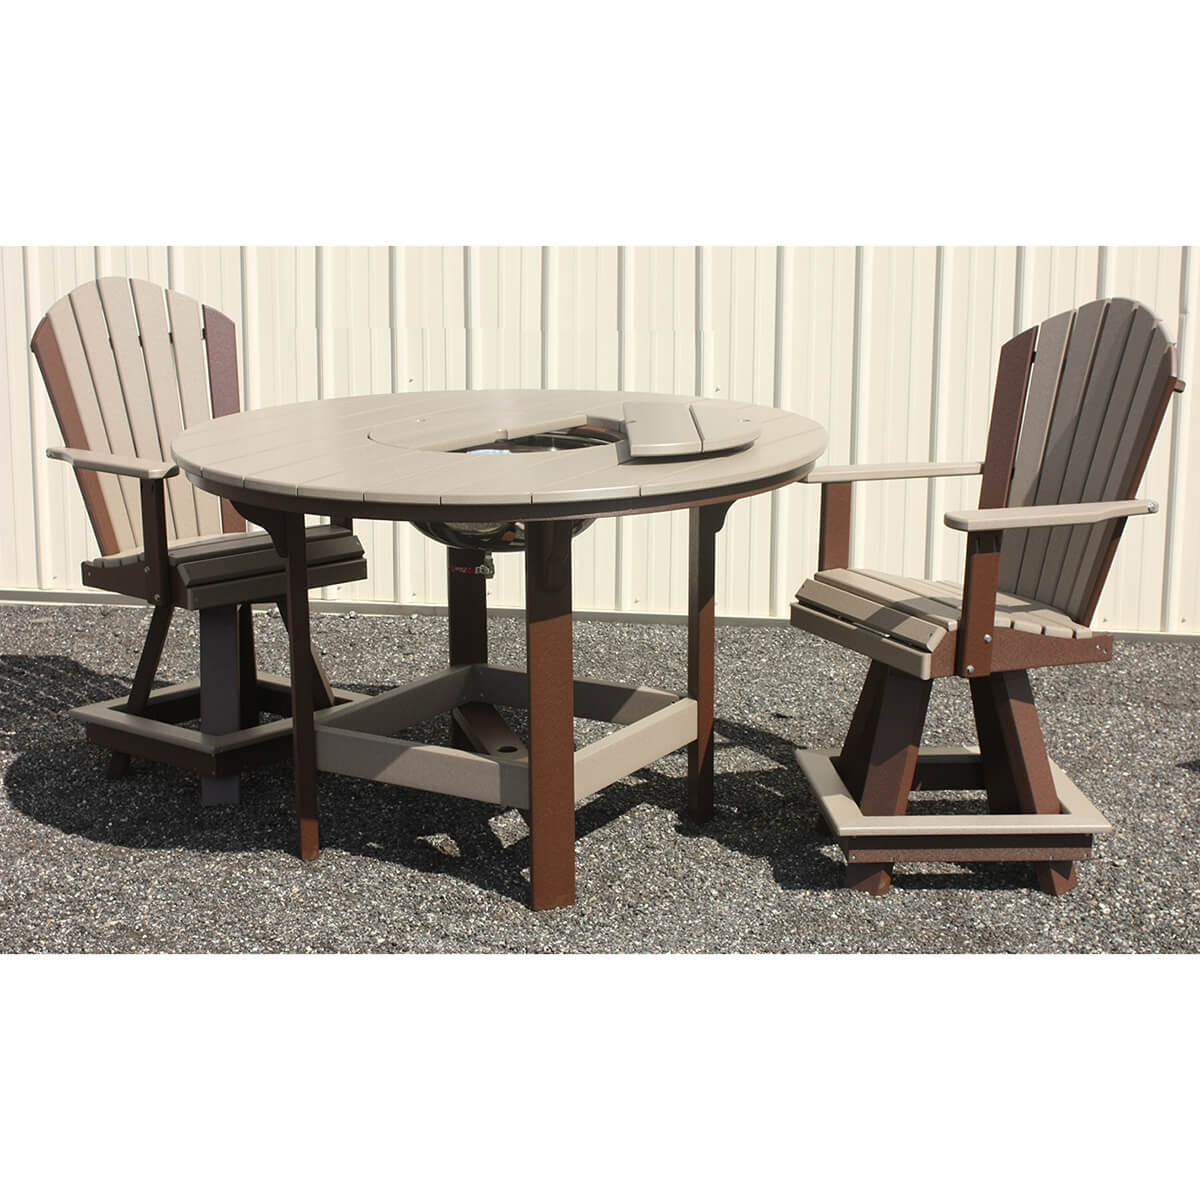 54 Inch Round Counter Table with 20 Inch Swivel Counter Chairs